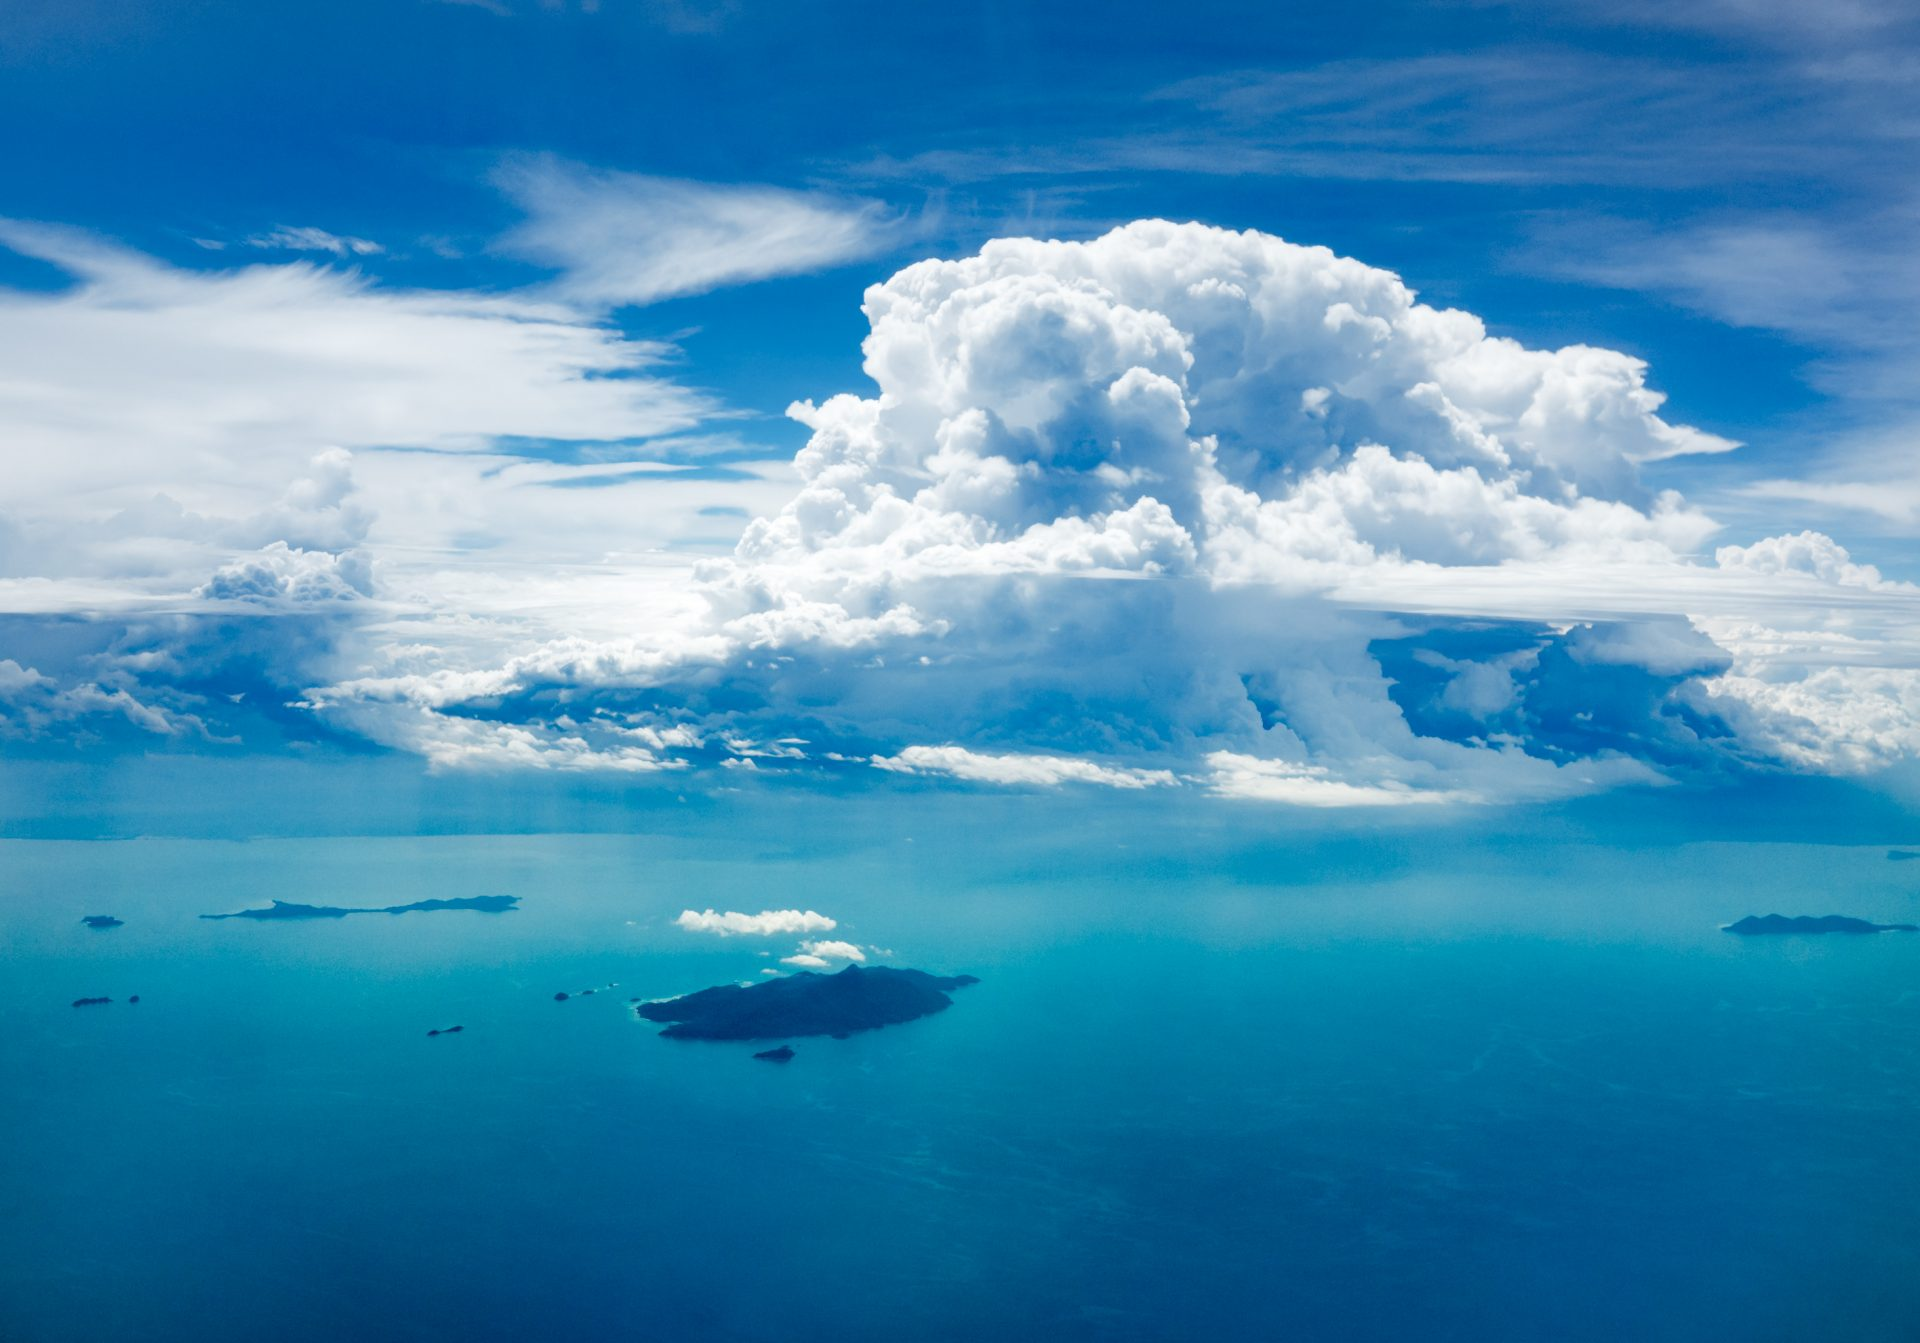 View of clouds and islands in the ocean